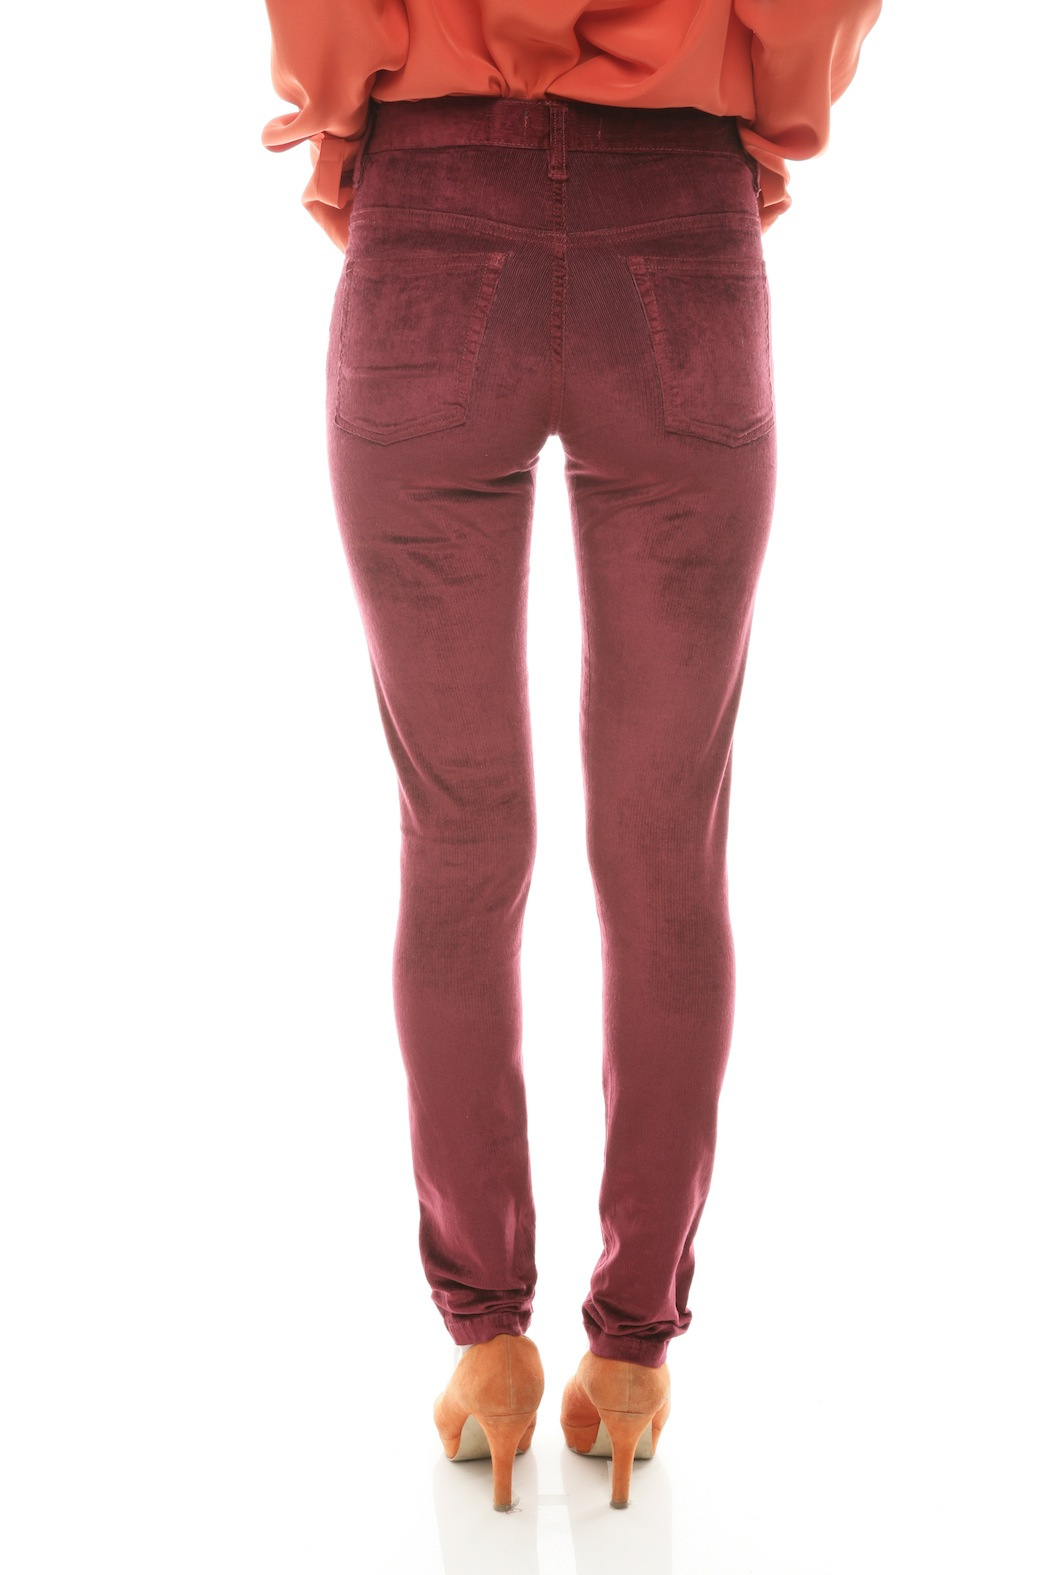 c0653c2bbfd7 Courtshop High-Waist Skinny Velvet Pants from Lower East Side by ...